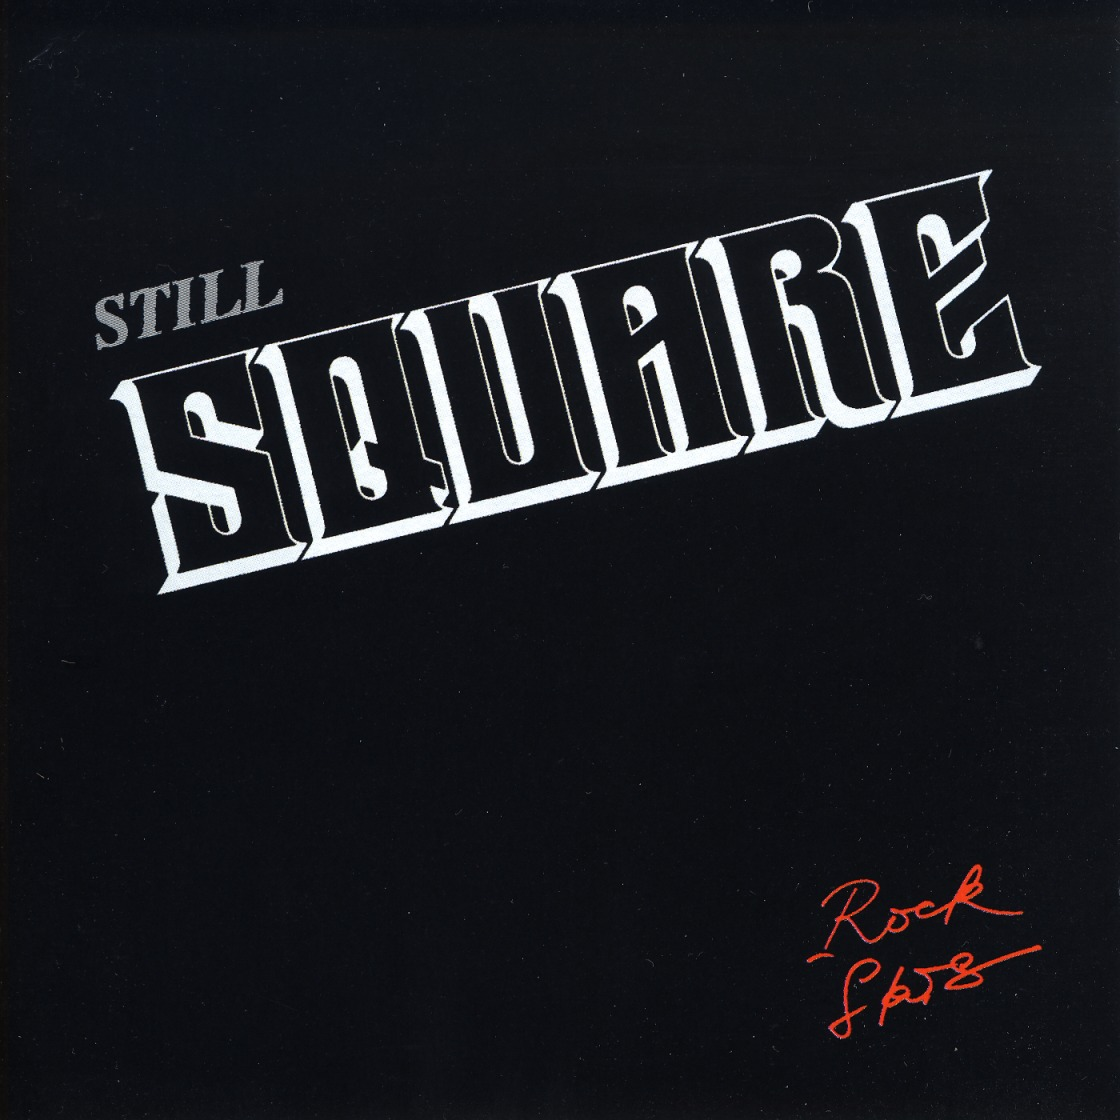 STILL SQUARE (France) / Rock Stars (CD+DVD)